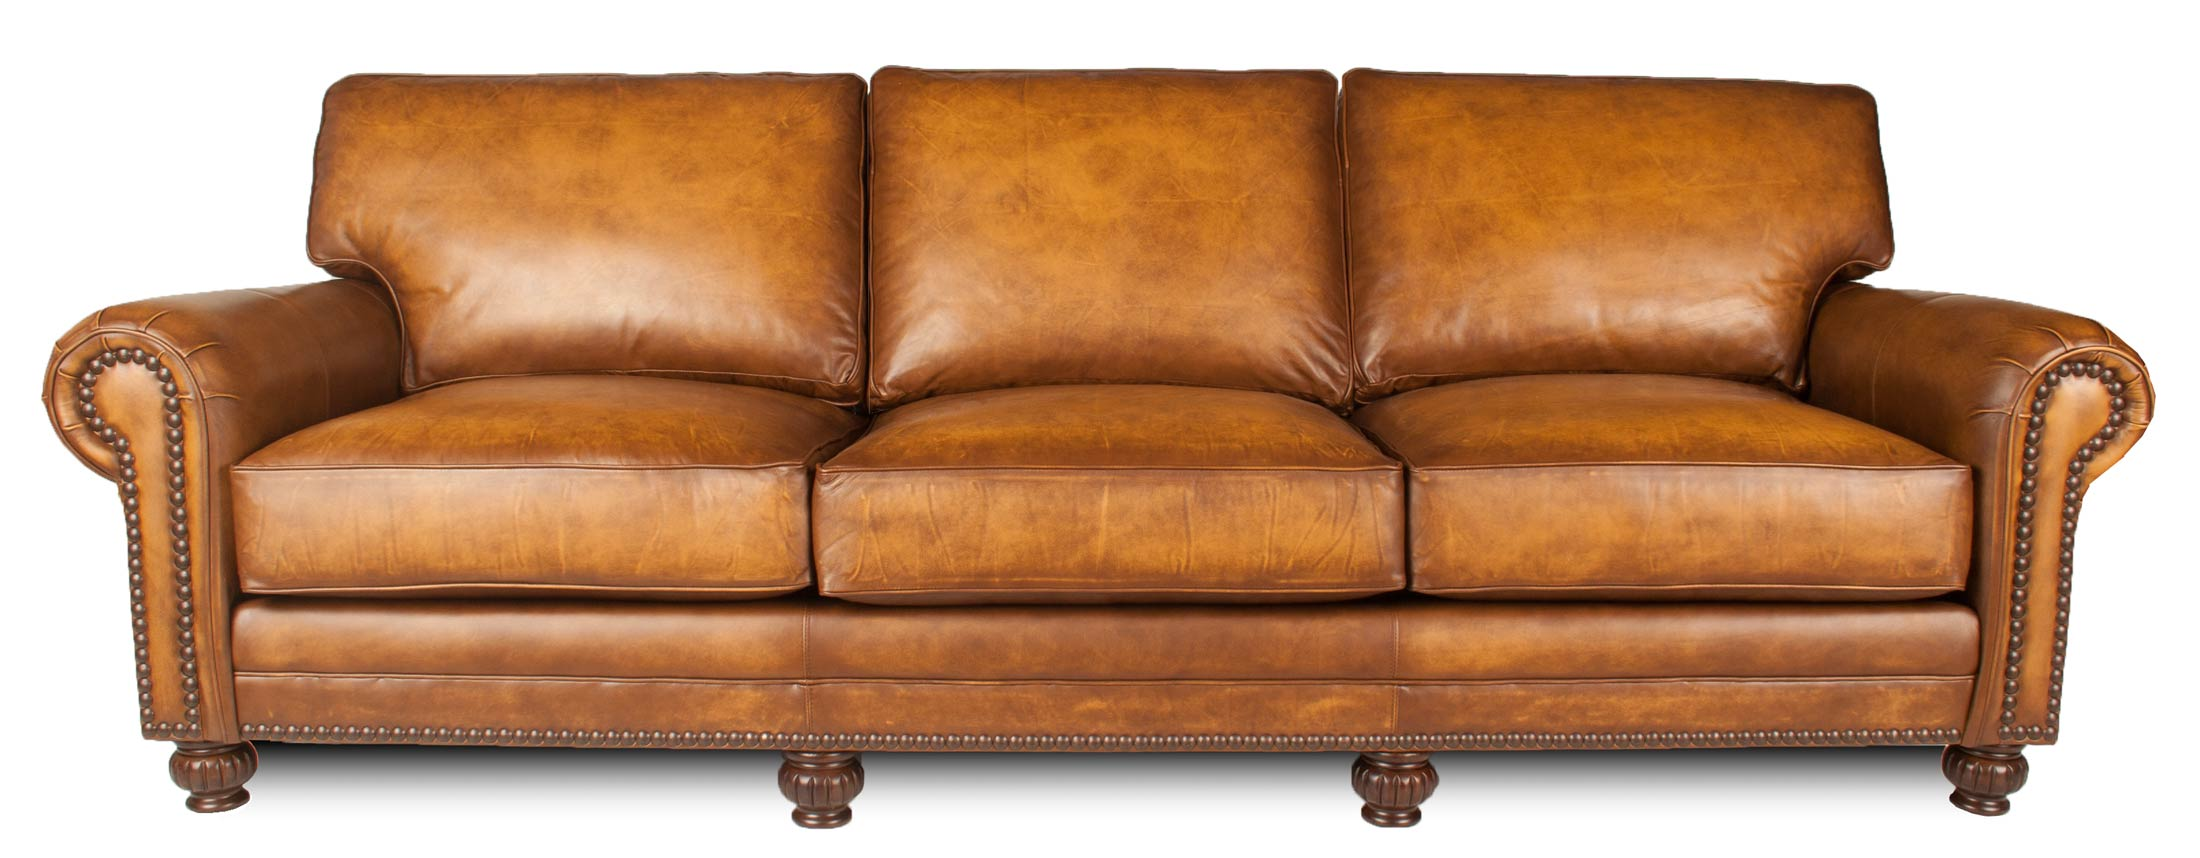 Loading zoom Deep Leather Furniture For the